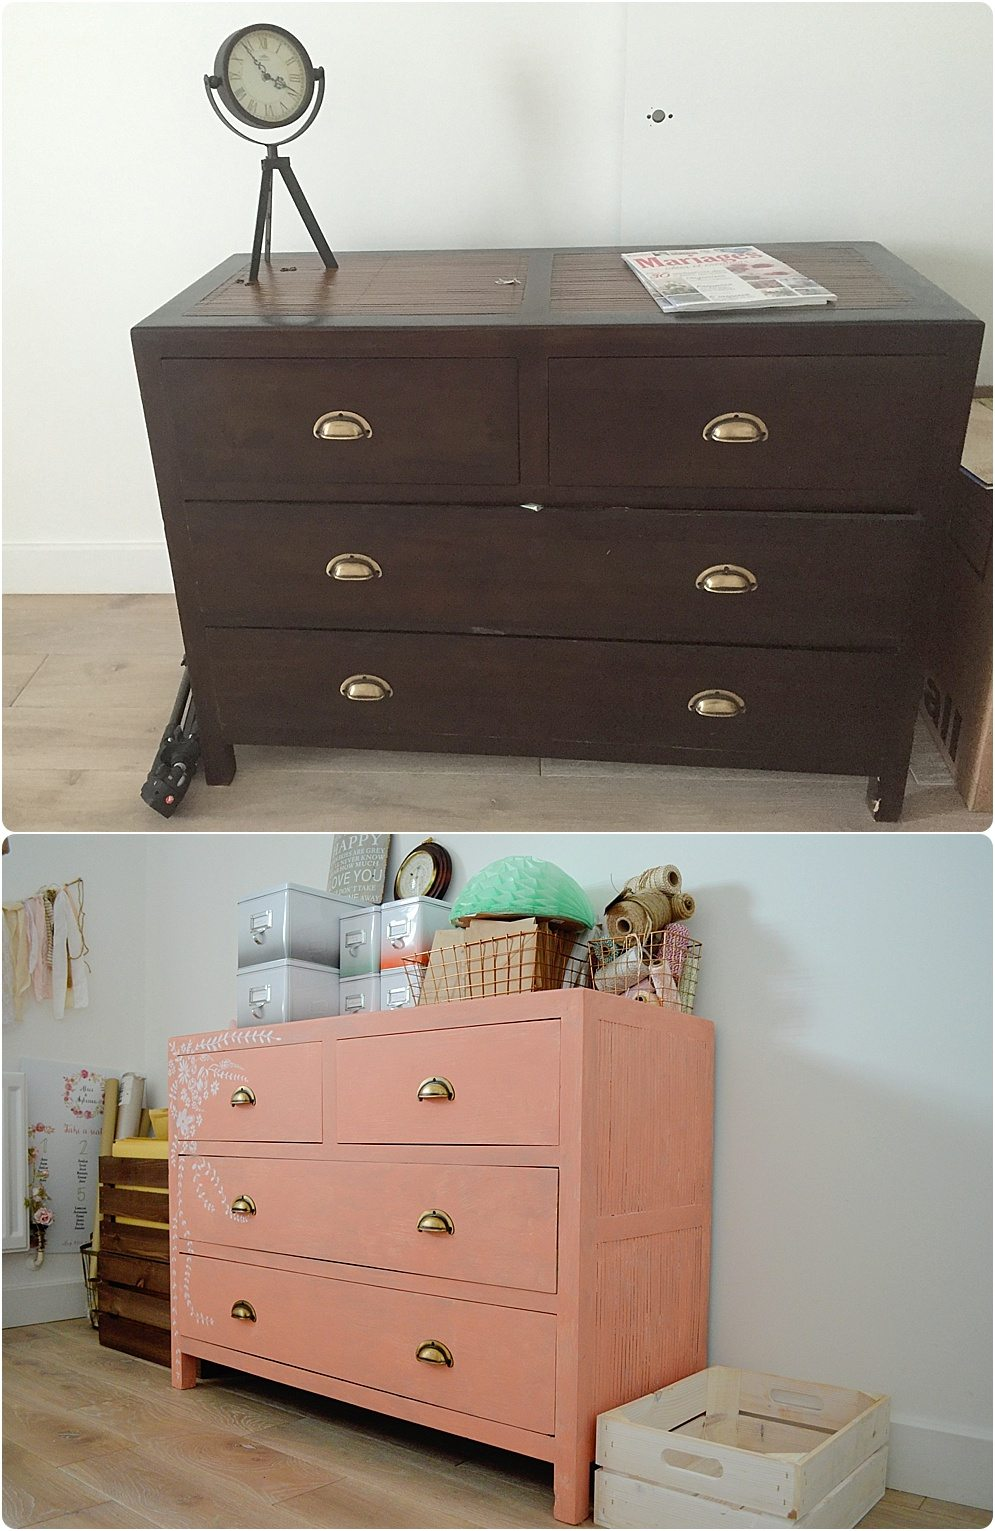 Relook meuble collage photos relooking meuble buffet avant aprs dtail with relook meuble - Relooking meuble bordeaux ...